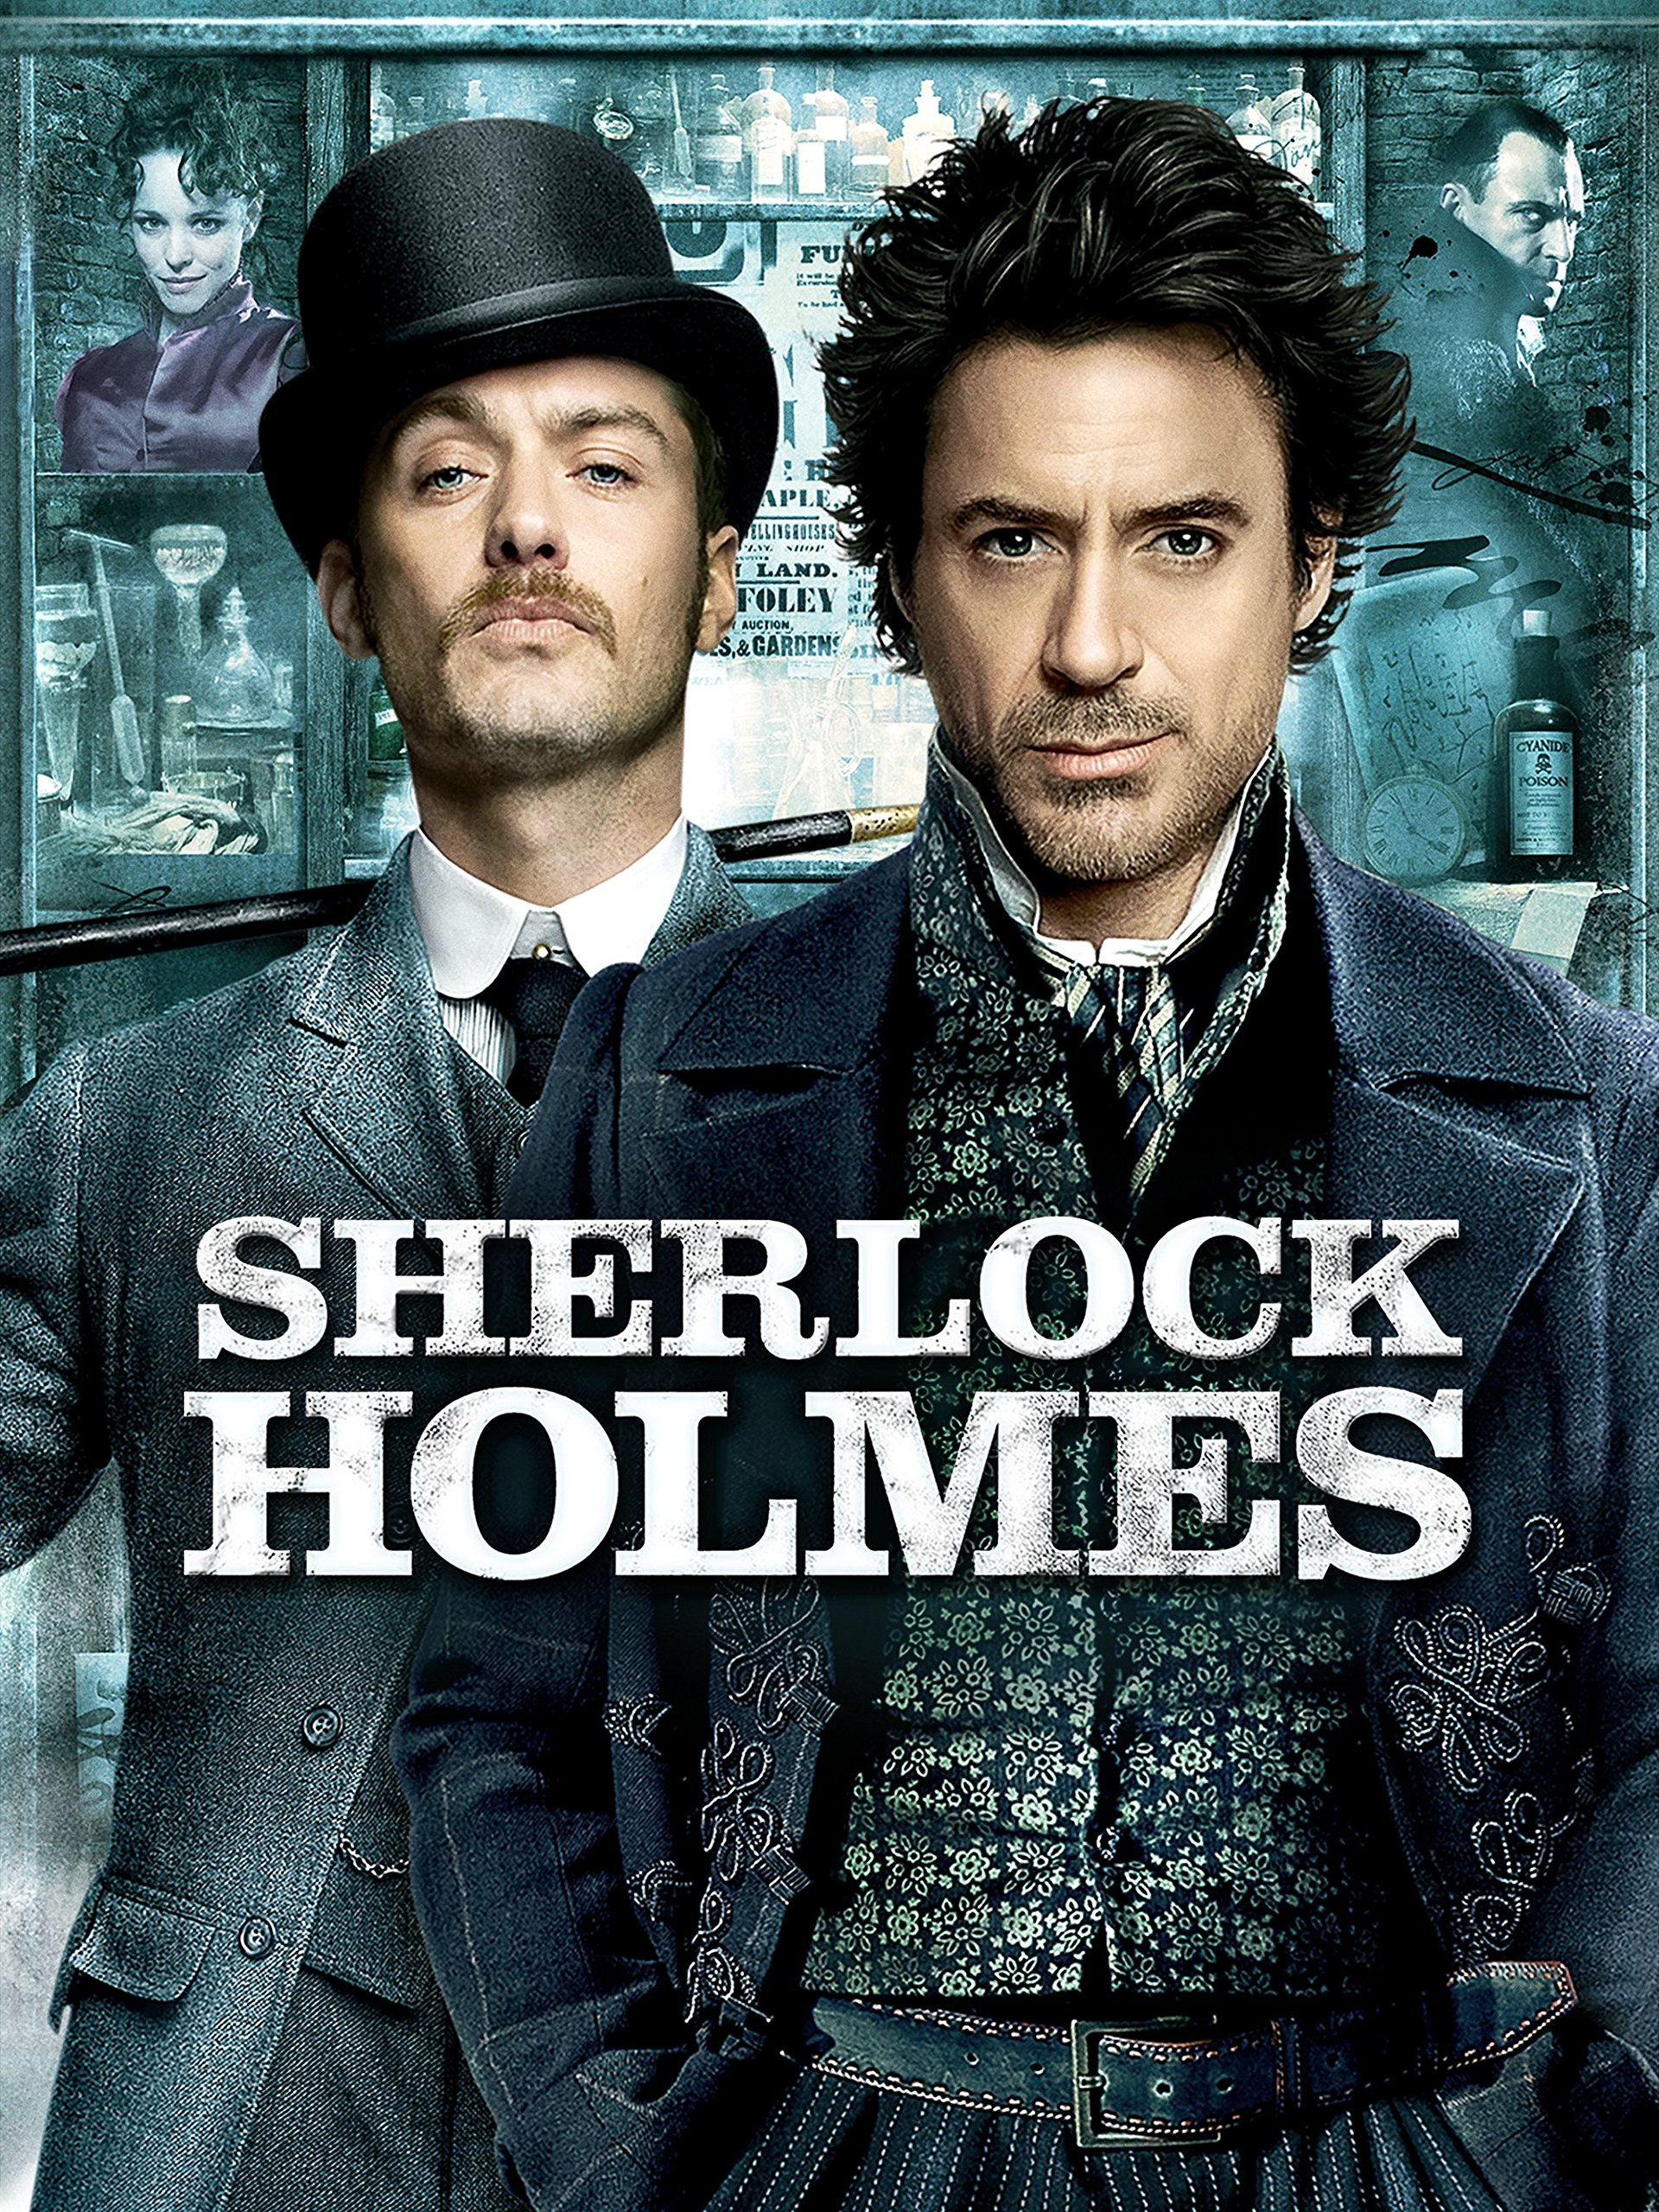 Amazon co uk: Watch Sherlock Holmes | Prime Video